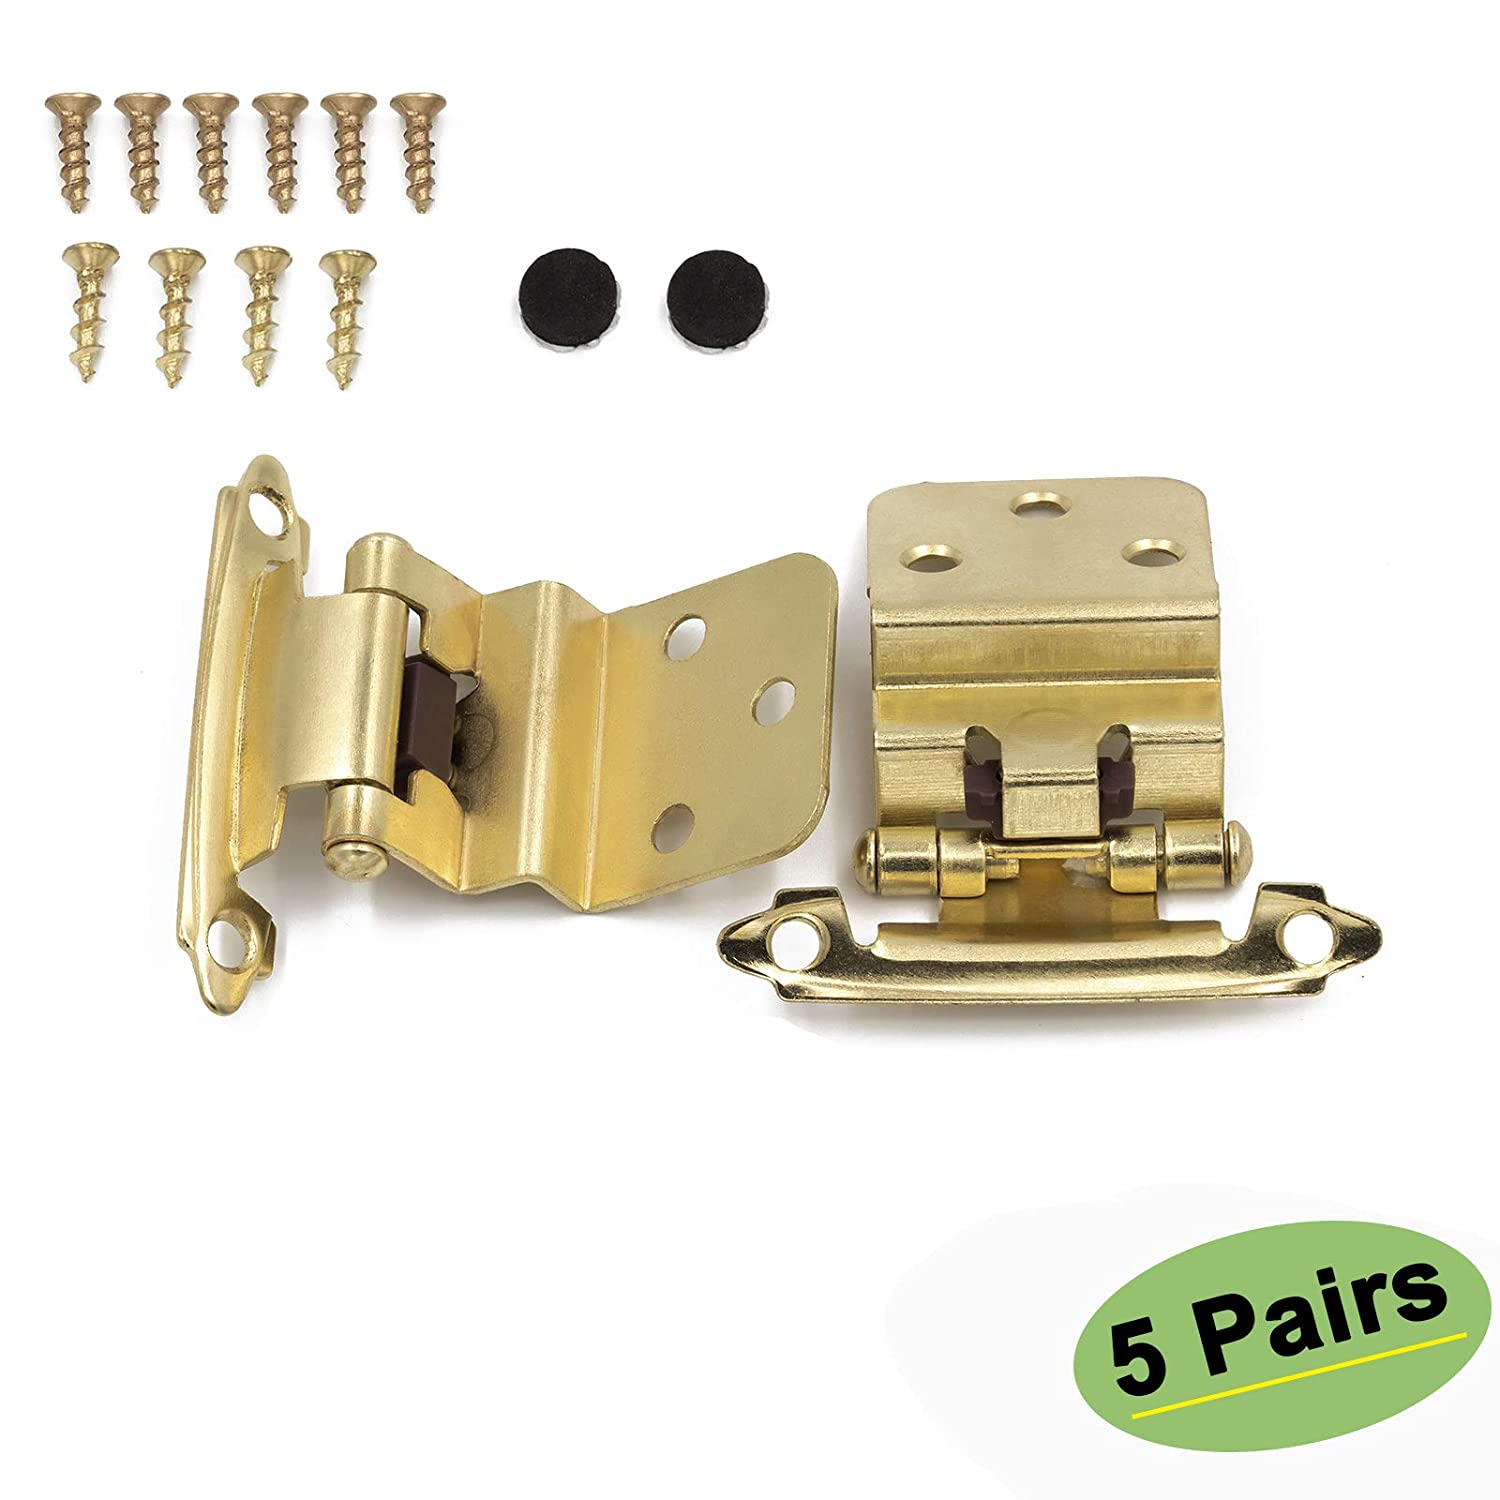 Gold Cabinet Hinges 12 Pairs 24 Pack Homdiy SCH38BB 3//8inch Brass Cabinet Hinges Self-Closing Face Mount 3//8 Inset Hinges Cabinet Harware